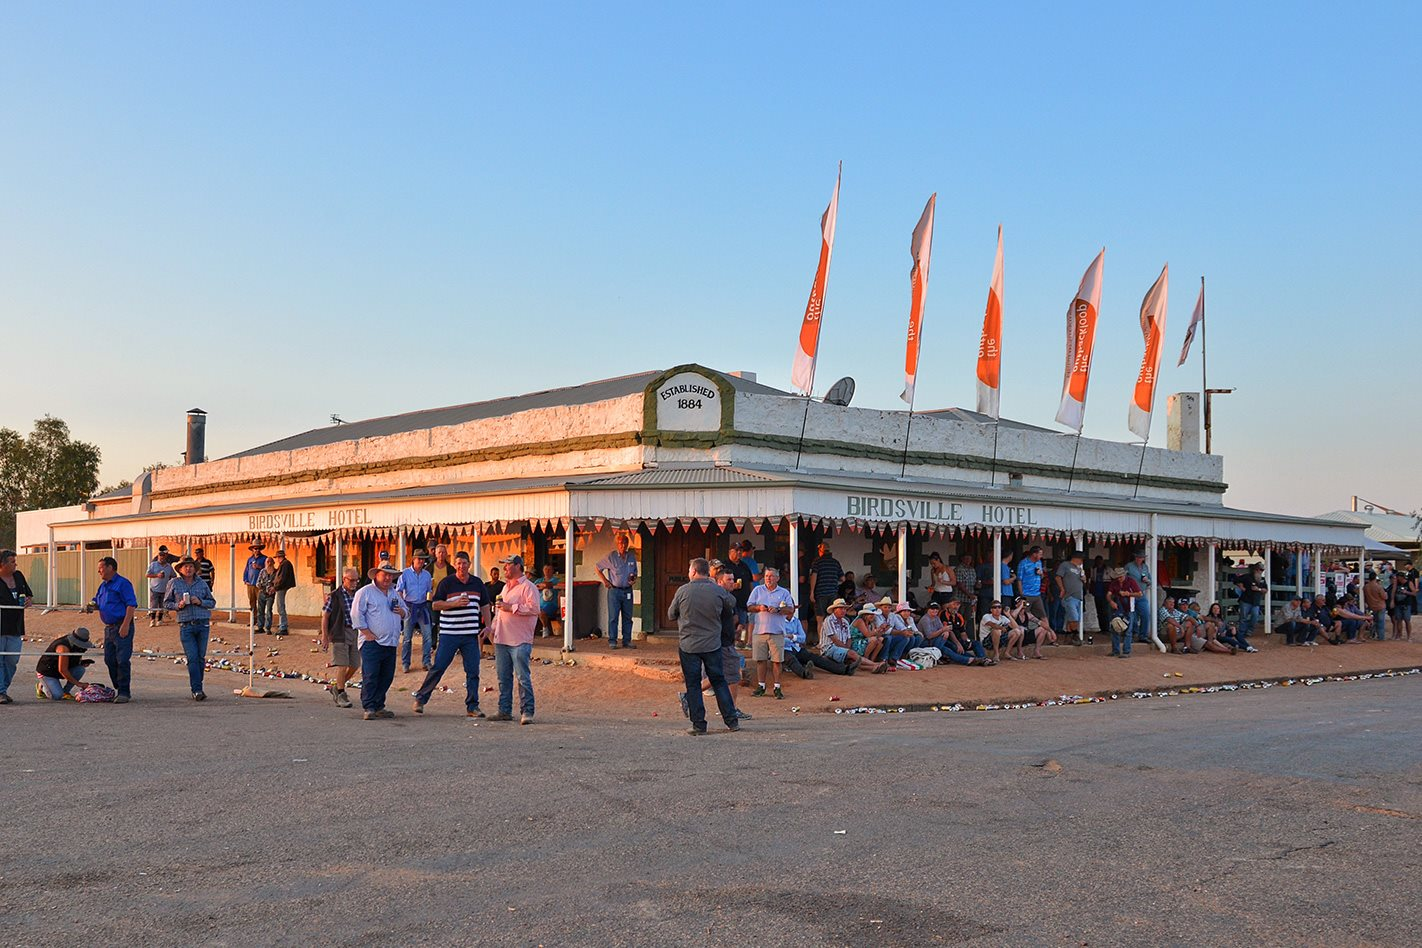 Birdsville Hotel during Birdsville Race